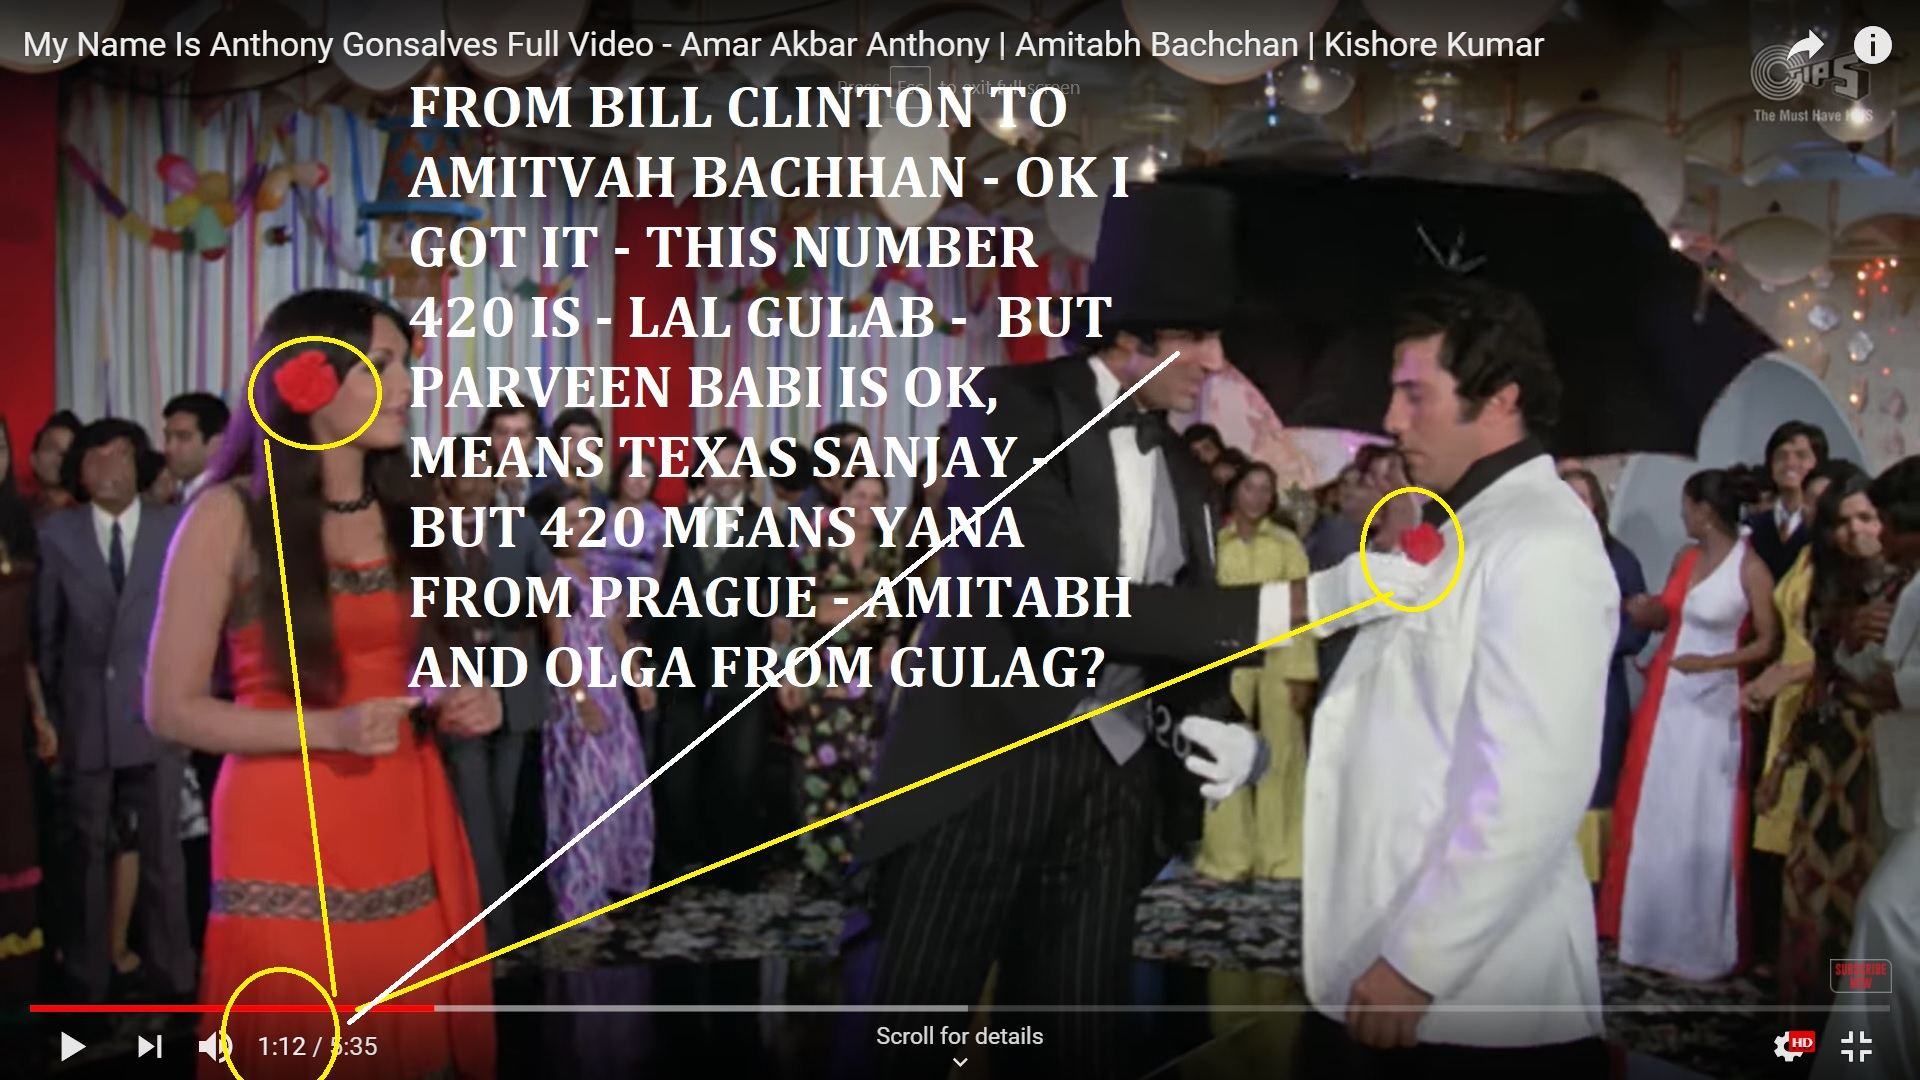 FROM BILL CLINTON TO AMITVAH BACHCHAN - AND SANJAY DUTT - AND EVEN TO THAT IILELR RUSHSIAN - LGA - U KNOW I AM SLOW BRAIEND AND NOT JEW - BUT H